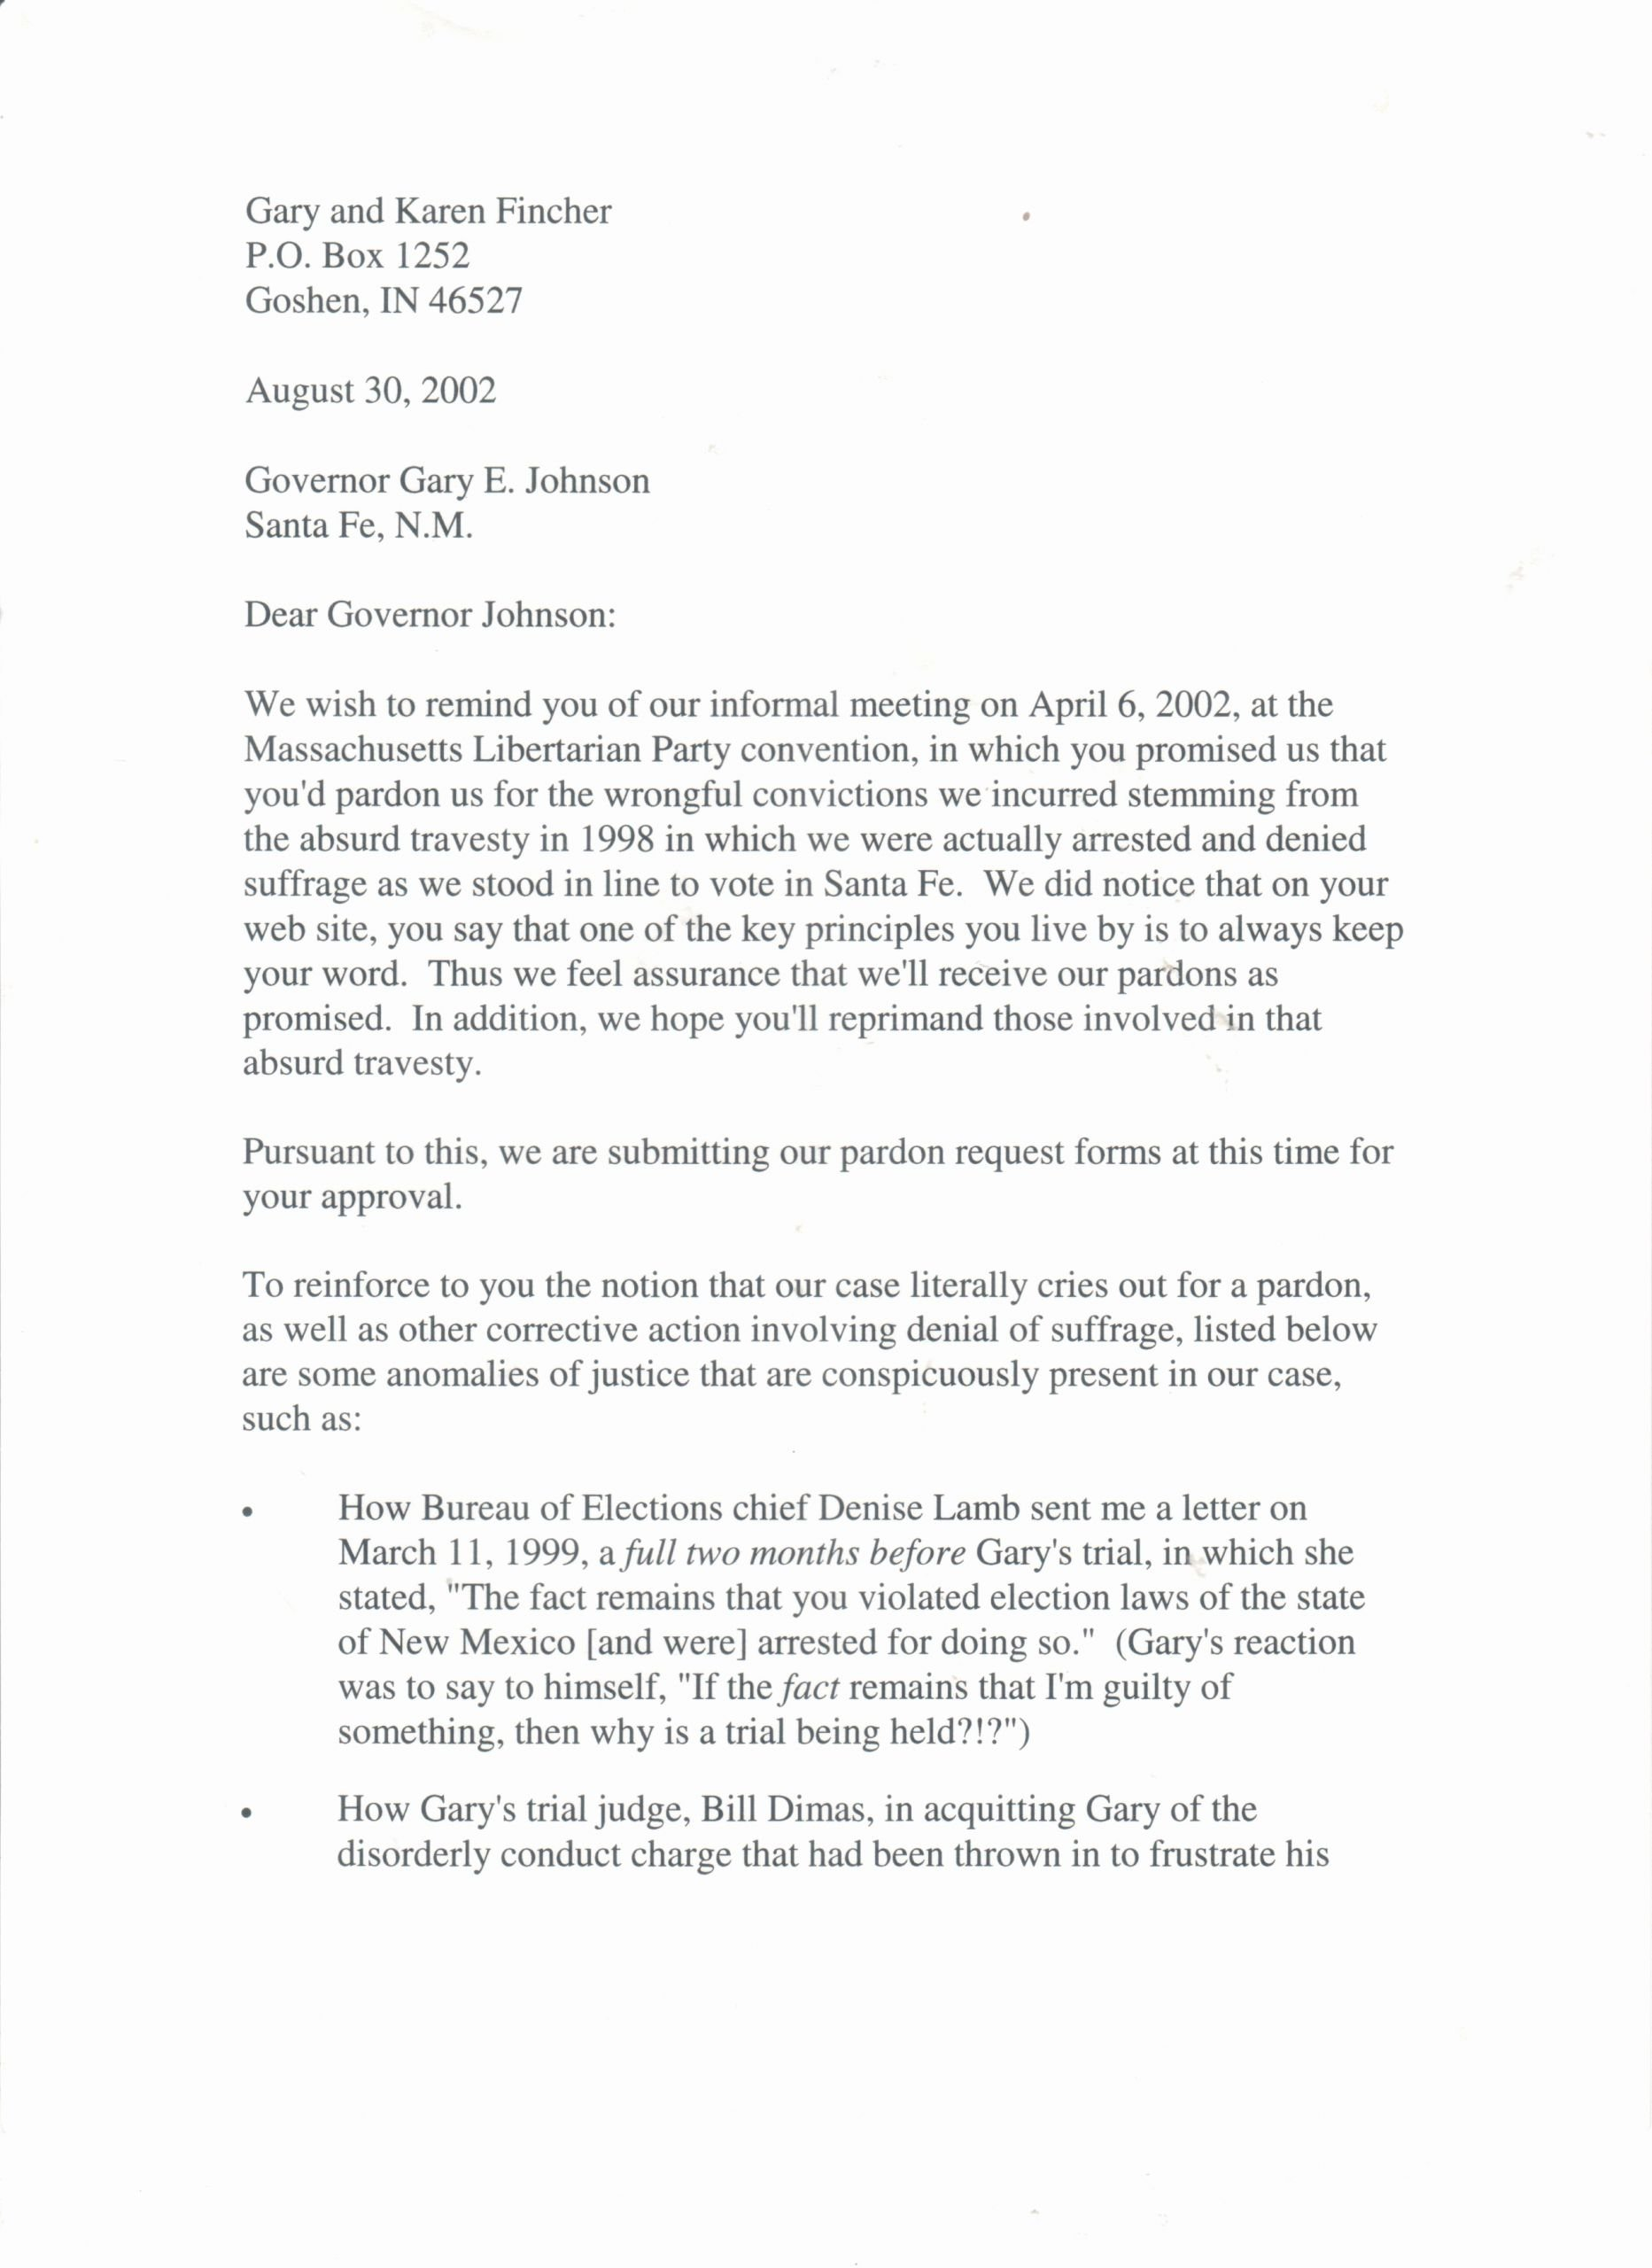 Sample Pardon Letter Inspirational Gop Presidential Hopeful Gary Johnson A Core Trust issue